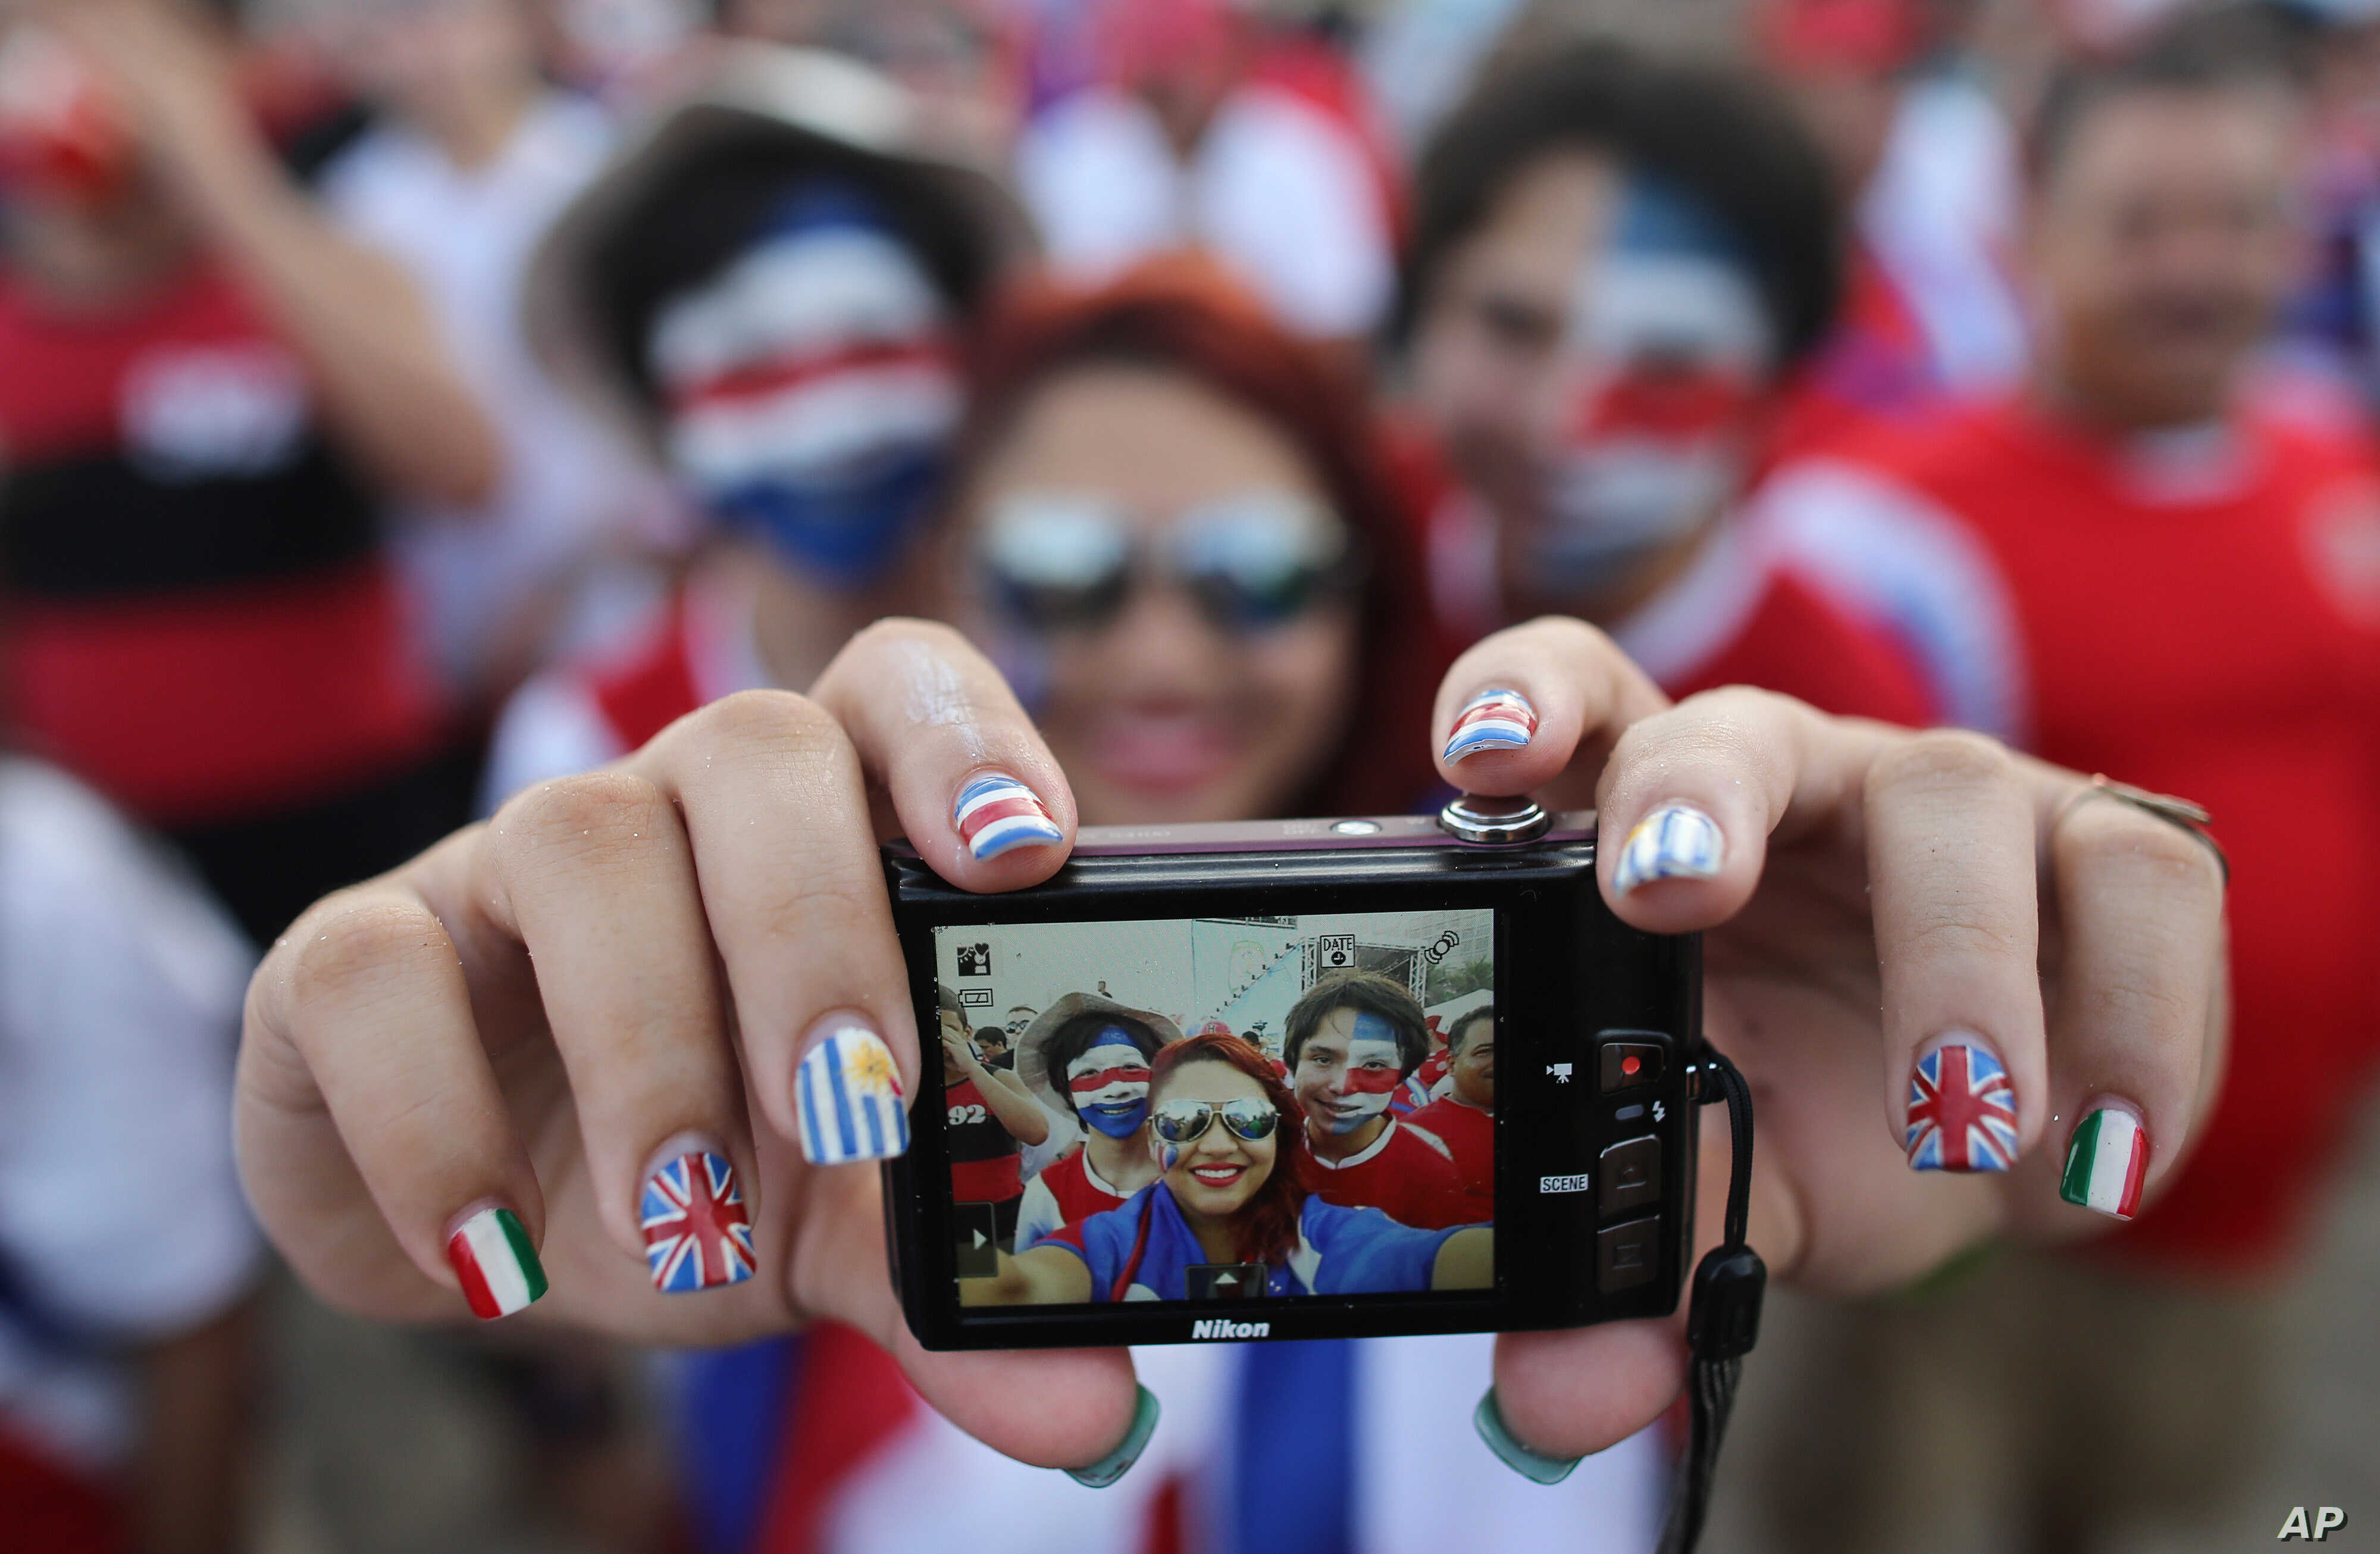 Costa Rica soccer fans pose for a selfie before watching their team's World Cup round of 16 match against Greece on a live telecast inside the FIFA Fan Fest area on Copacabana beach in Rio de Janeiro, Brazil, June 29, 2014.